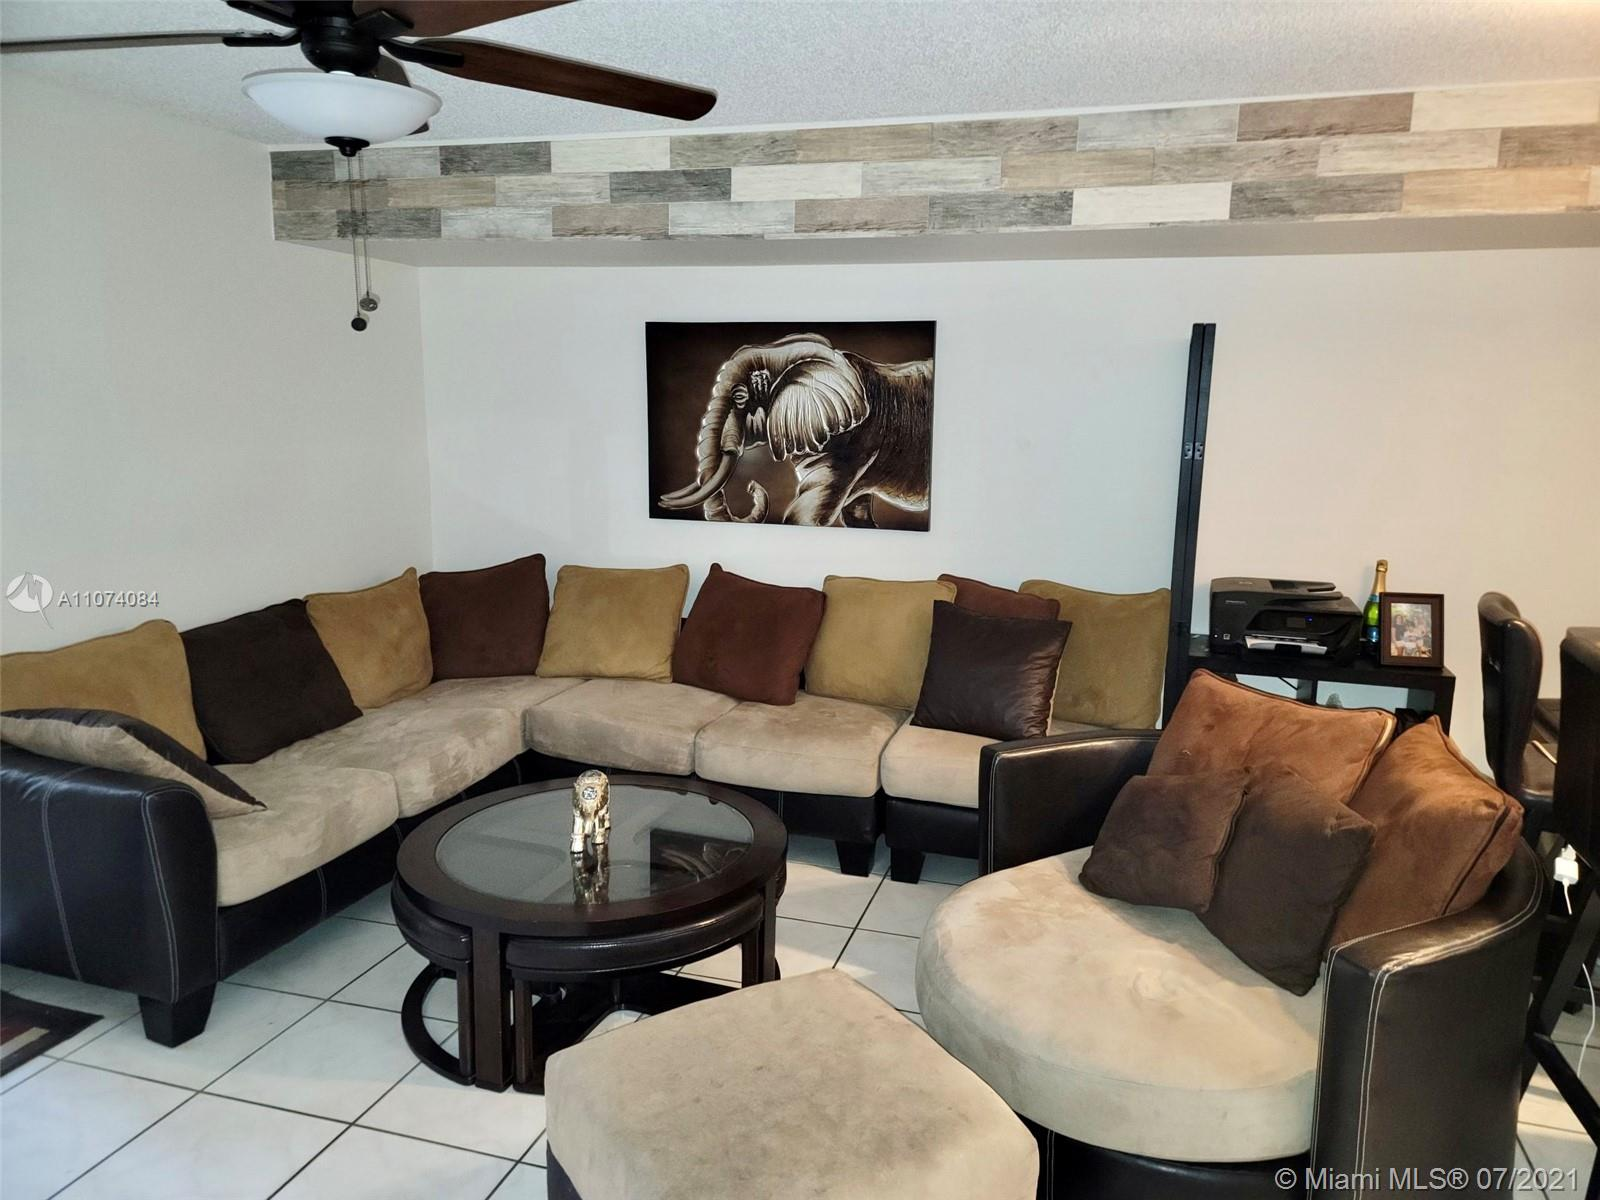 EXCELLENT SAN MARINO COVE 2/2 and a half WITH ONE CAR GARAGE.  The perfect family home. Updated Kitchen, half bath, and master Bathroom. Open living room kitchen and dining room area.   Well lit, spacious.  New stacked washer/dryer.  Screened in the patio next to the community pool.  Low monthly HOA, HOA covers roof repairs CANNOT LEASE FOR THE FIRST TWO YEARS.  PLEASE CALL THE OWNER TO SEE THE PROPERTY. GEORGE 9545794856 ROSE 9548019829   Note: **The owner of the property will be attending the open house** Sunday 25, 2021